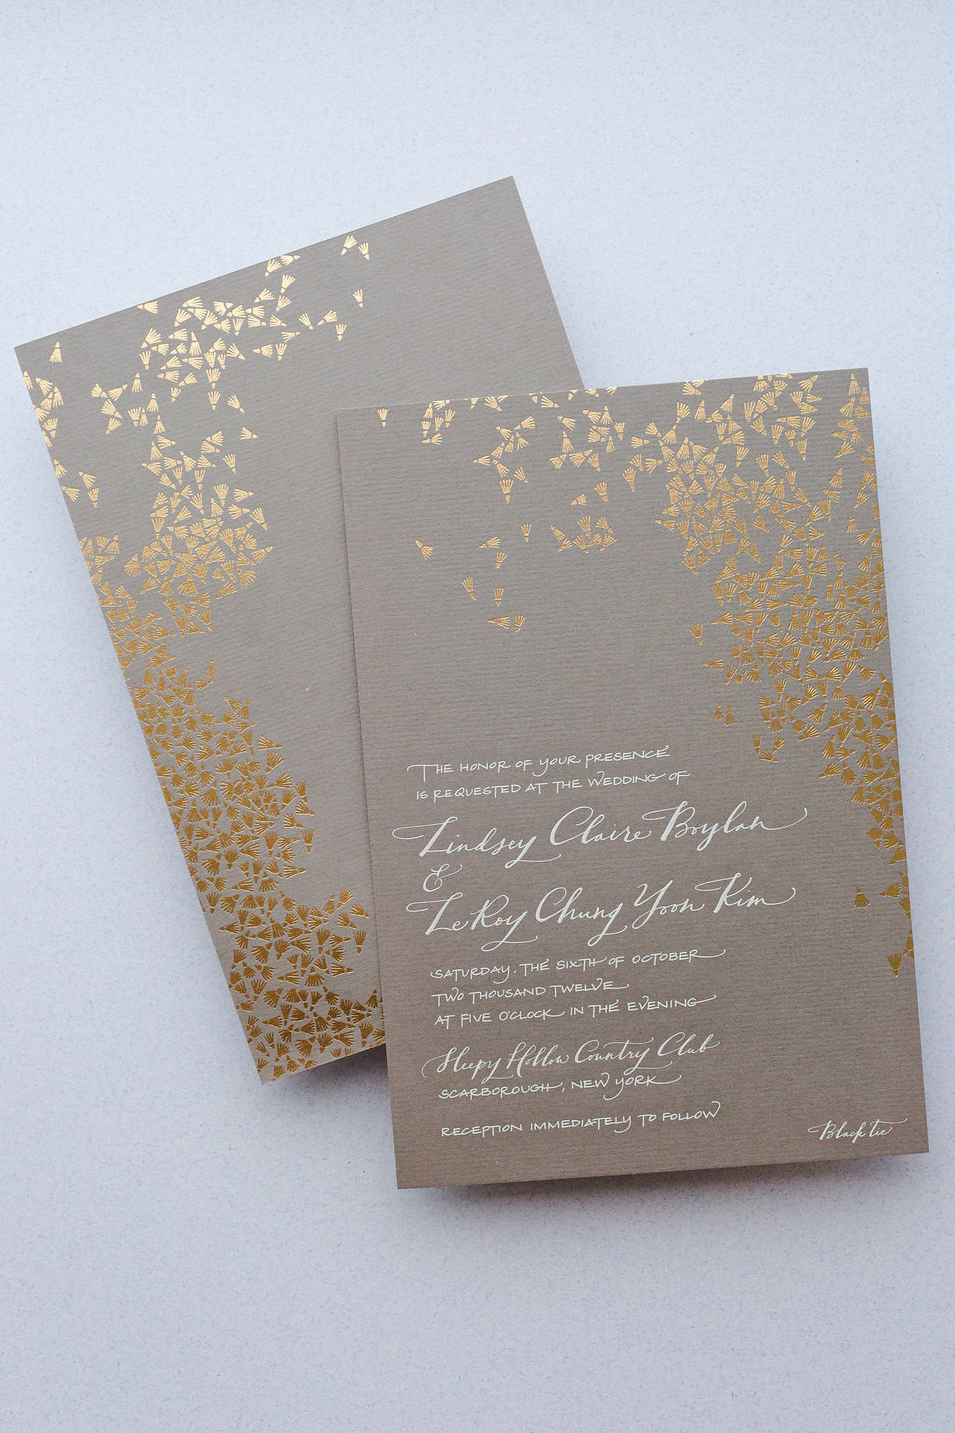 paperfinger-invitation-ivoryengraving-frontback.jpg